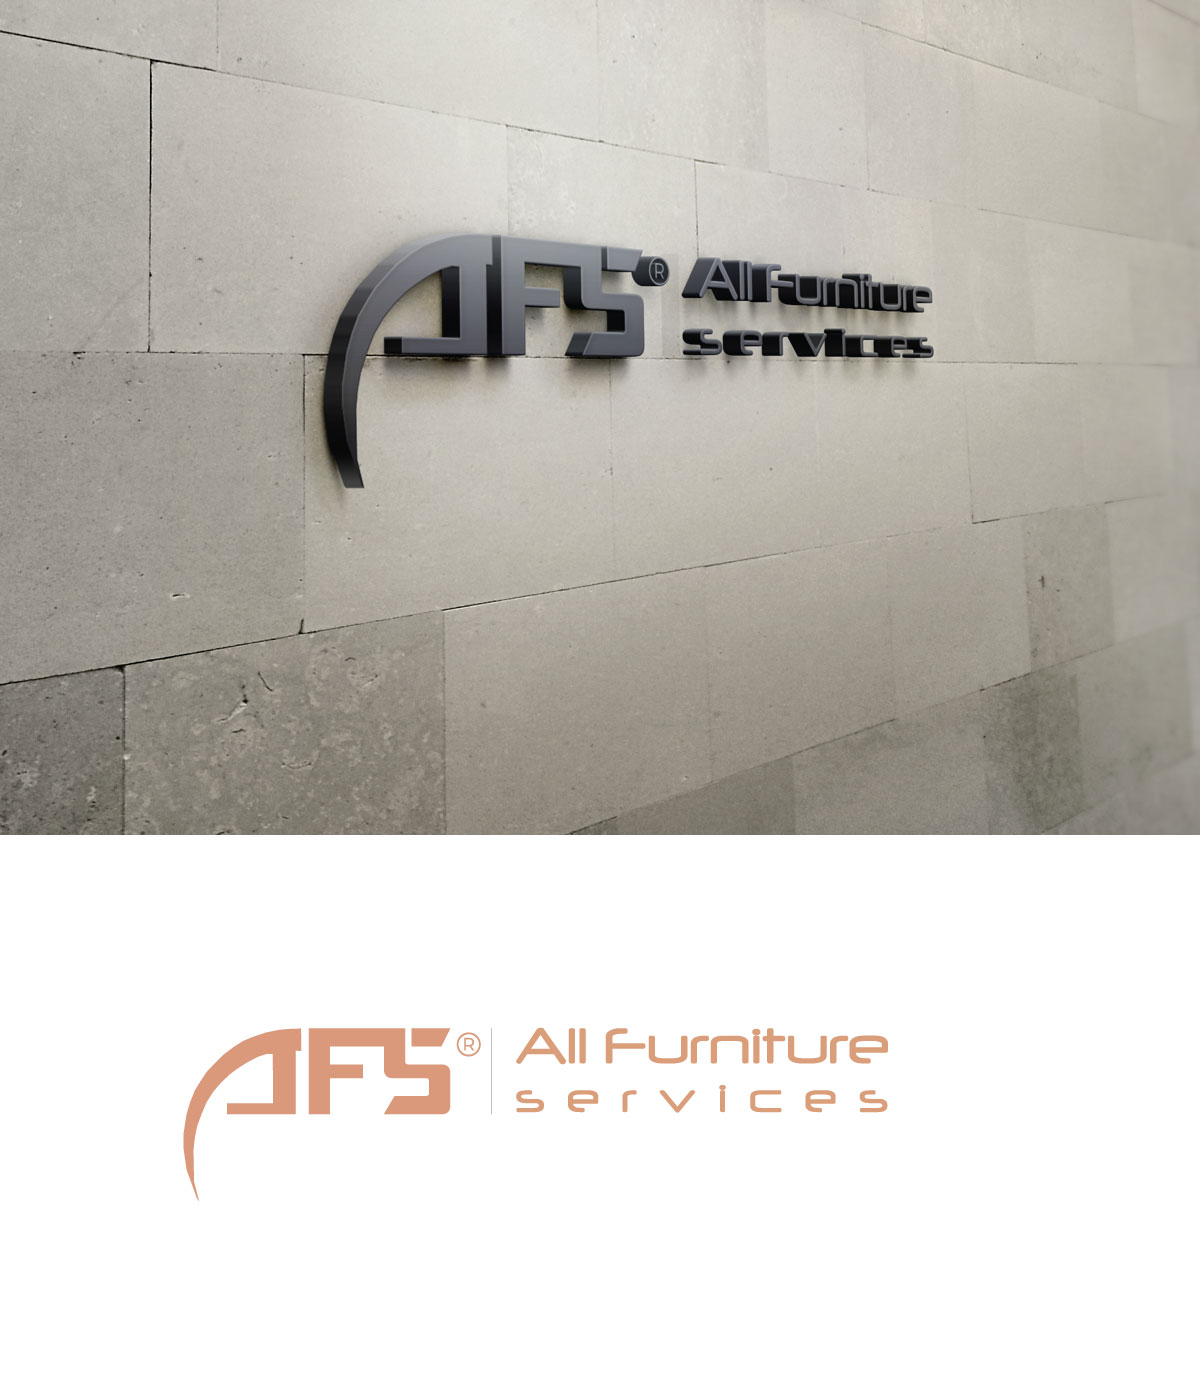 Professional, Upmarket, Furniture Logo Design for AFS / All